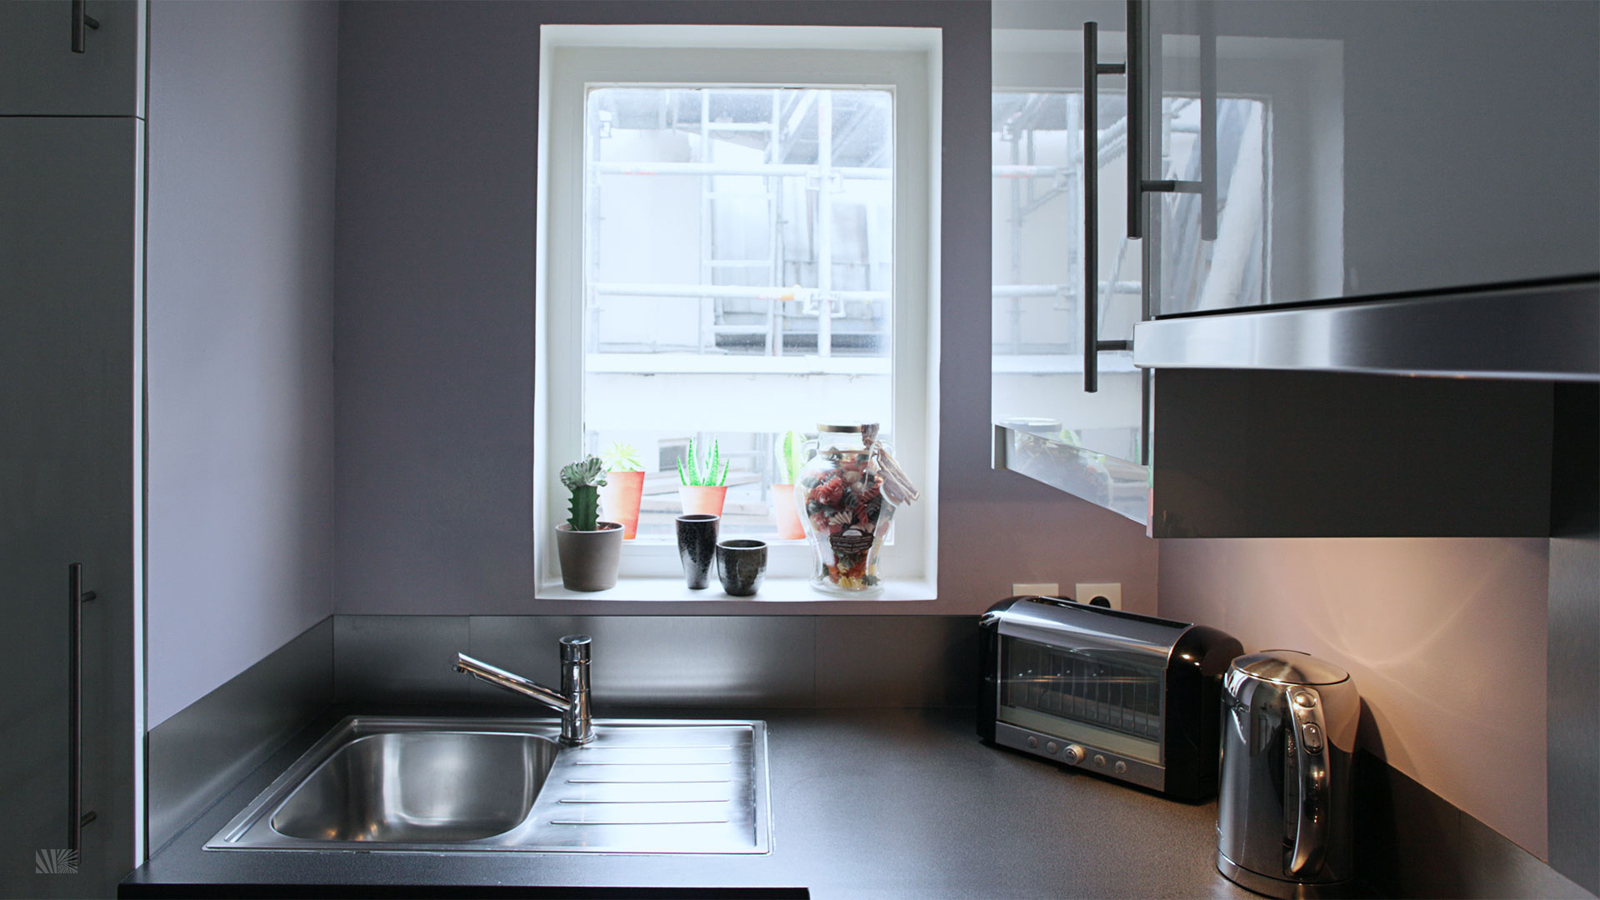 Stylish ikea kitchen for small space - Small space solutions ikea style ...